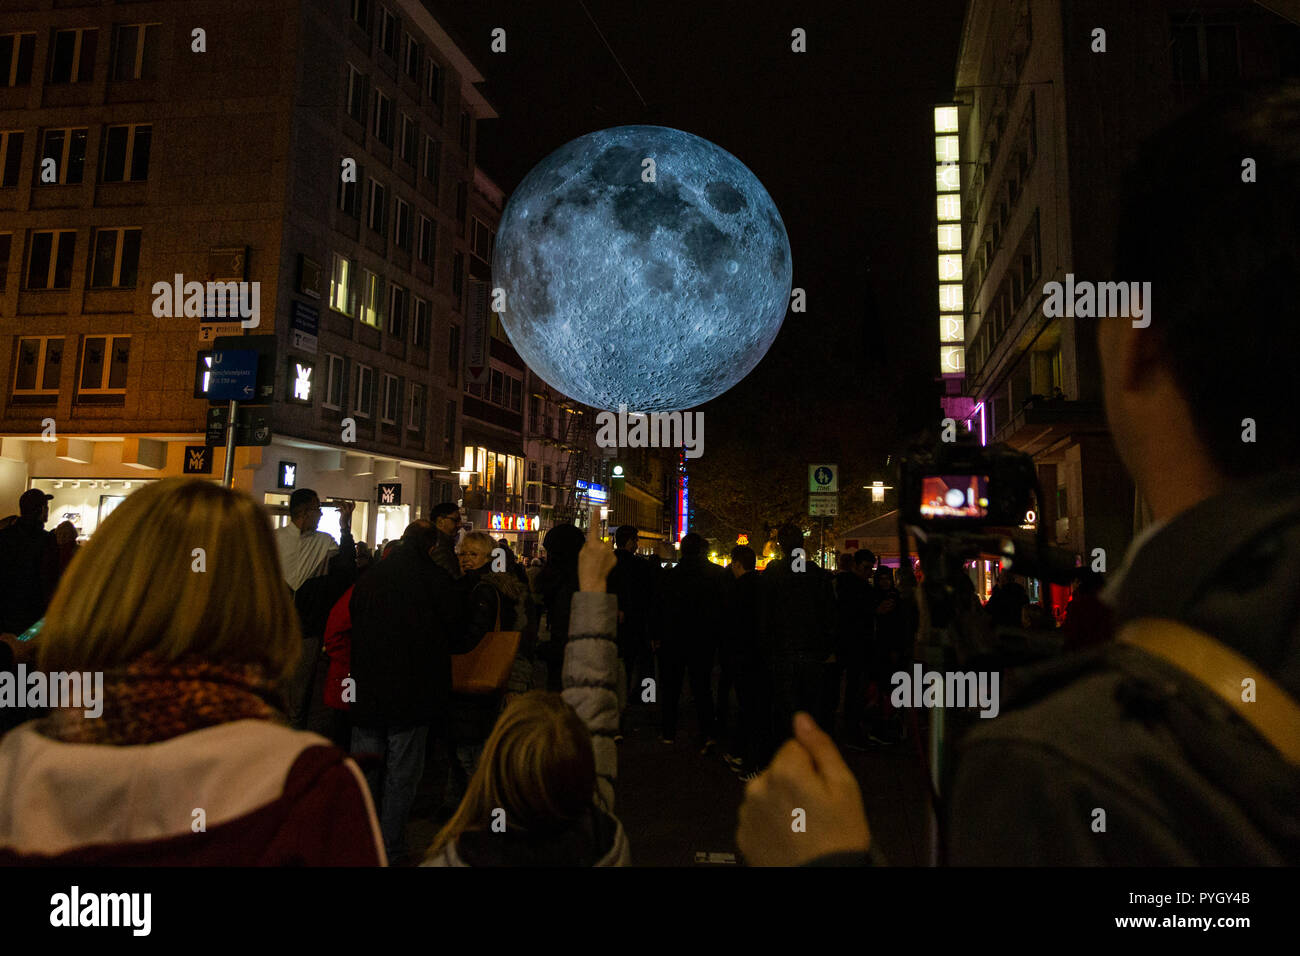 Essen, Germany. Giant Moon above Kettwiger Straße street. Museum of the Moon by British artist Luke Jerram. The 2018 Essen Light Festival gets under way with many light art installations throughout the town centre until 4 November 2018. - Stock Image